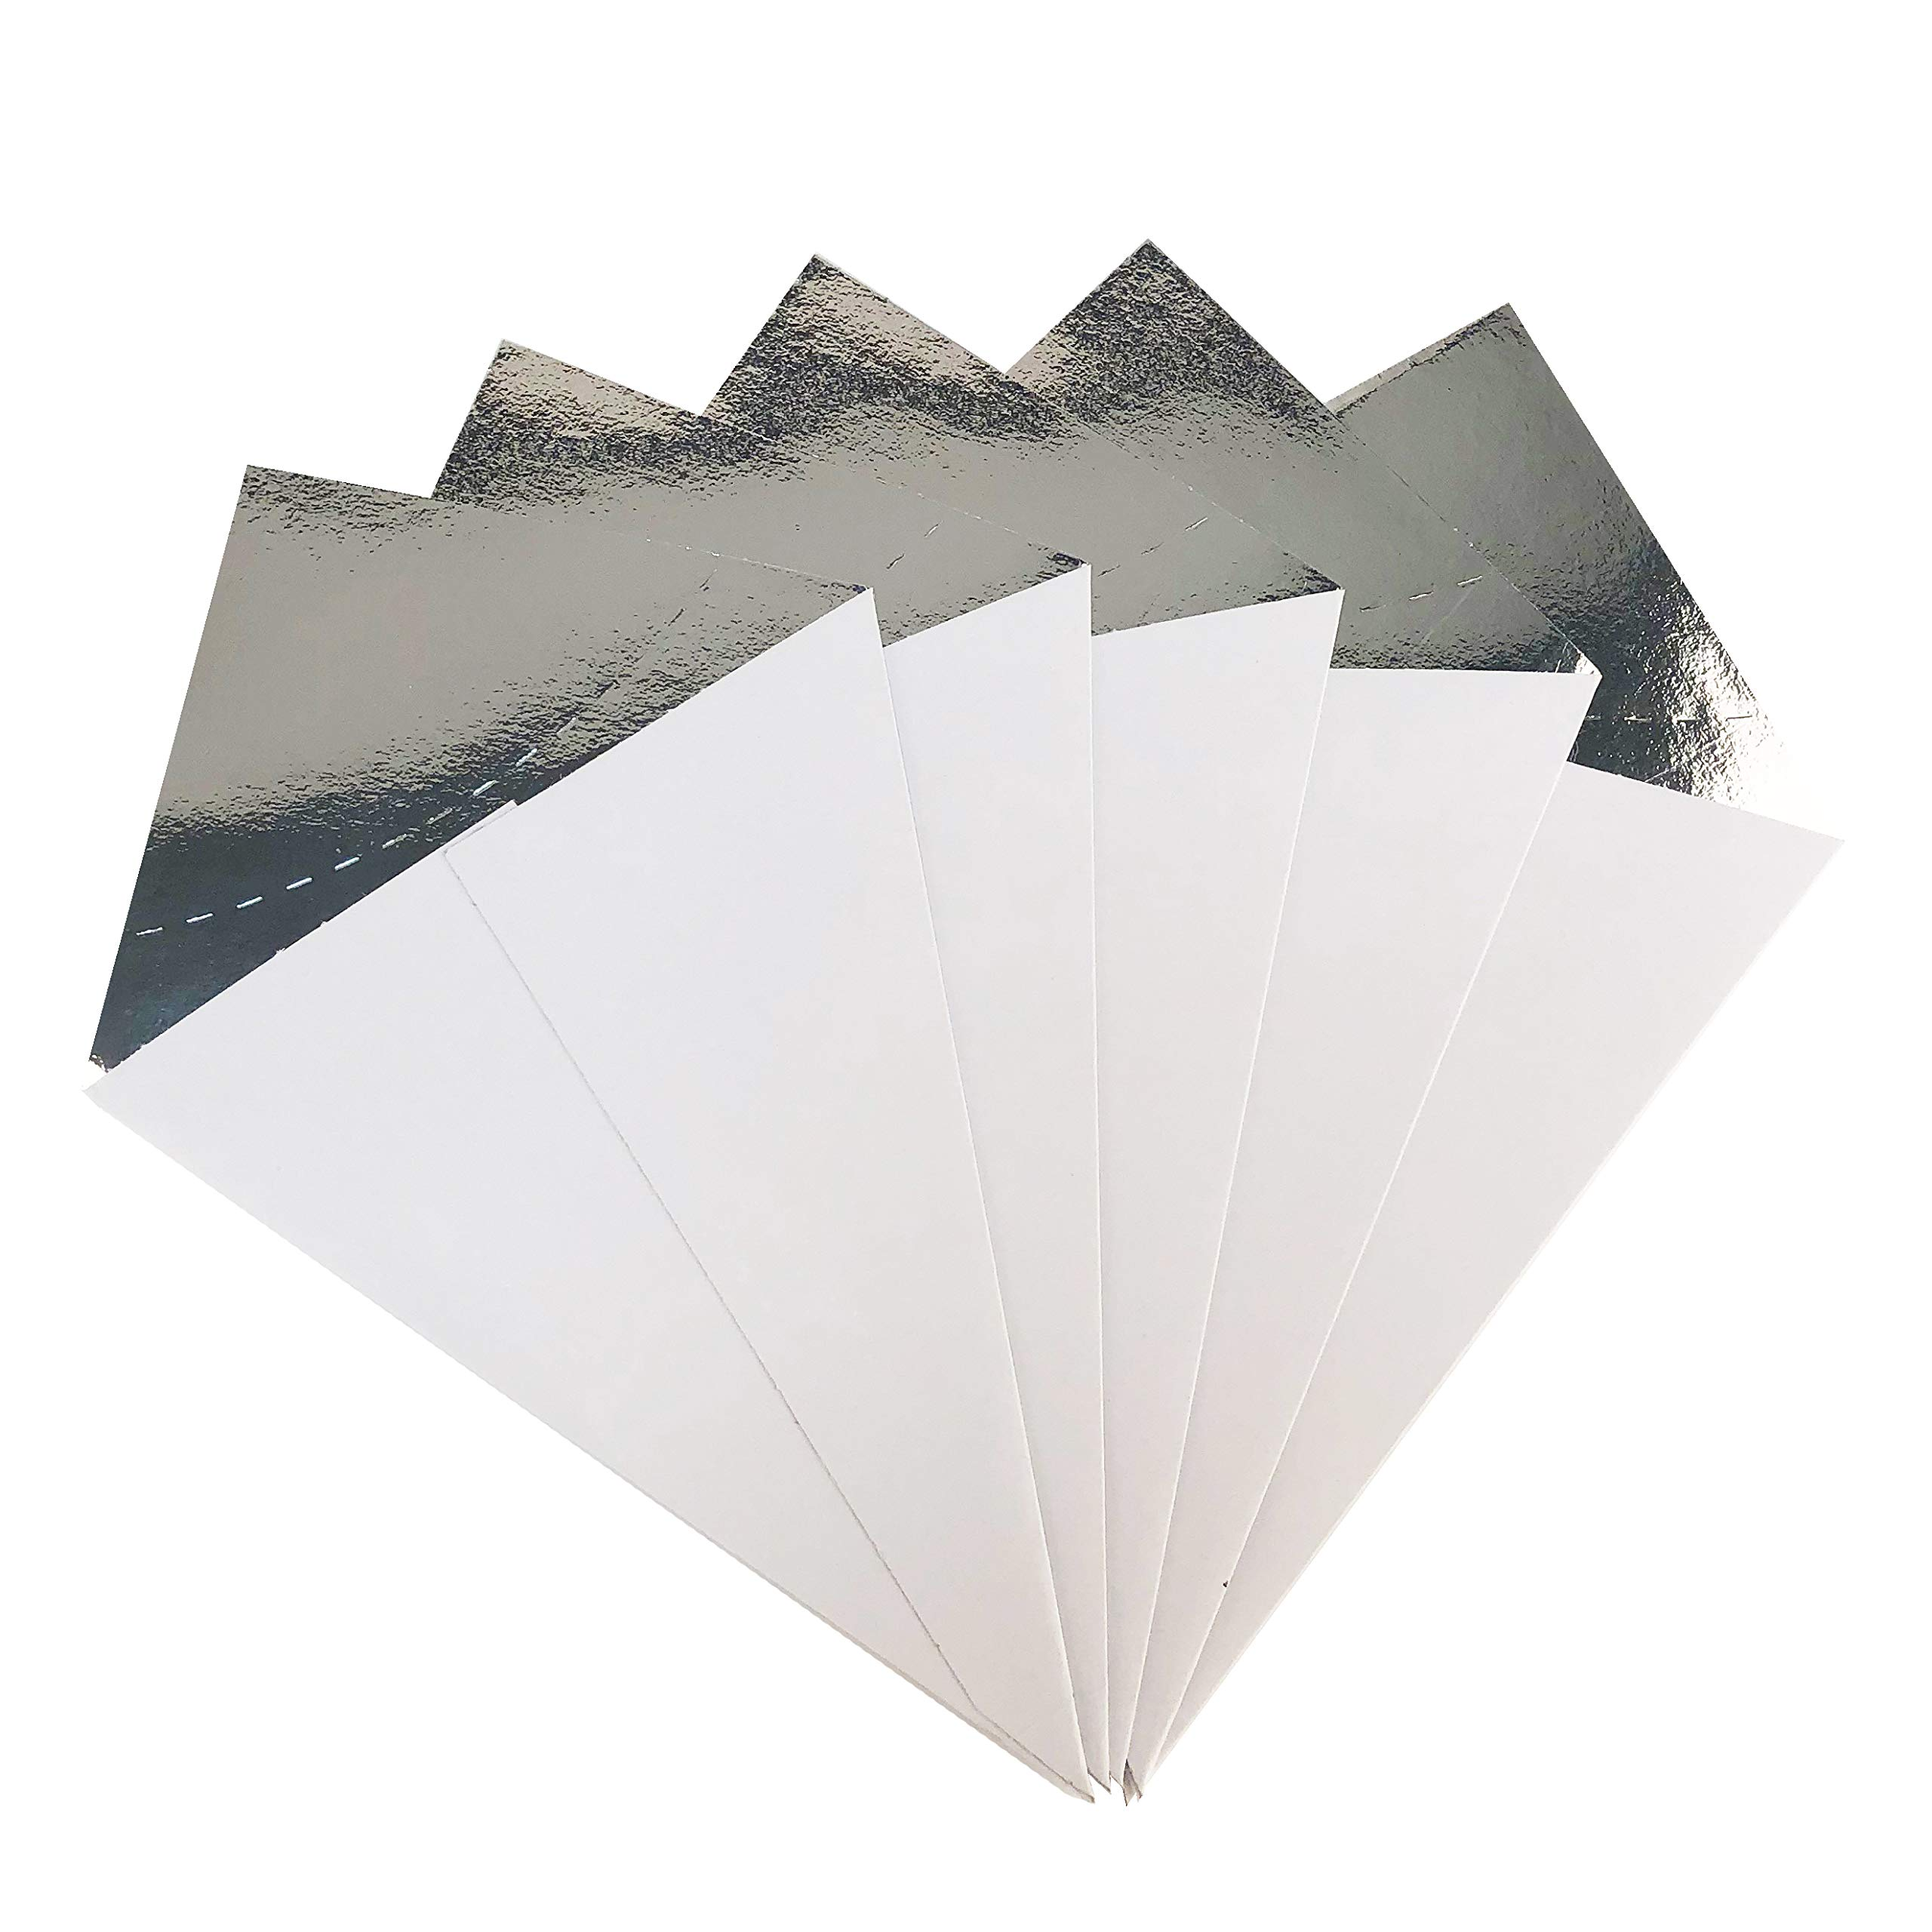 12'' X 4.5'' White, Take Away Paper Cone, Clipper Mill by GET 4-CC500-WH (Pack of 500) (Metal Cone 4-21644 Sold Separately) by GET (Image #2)